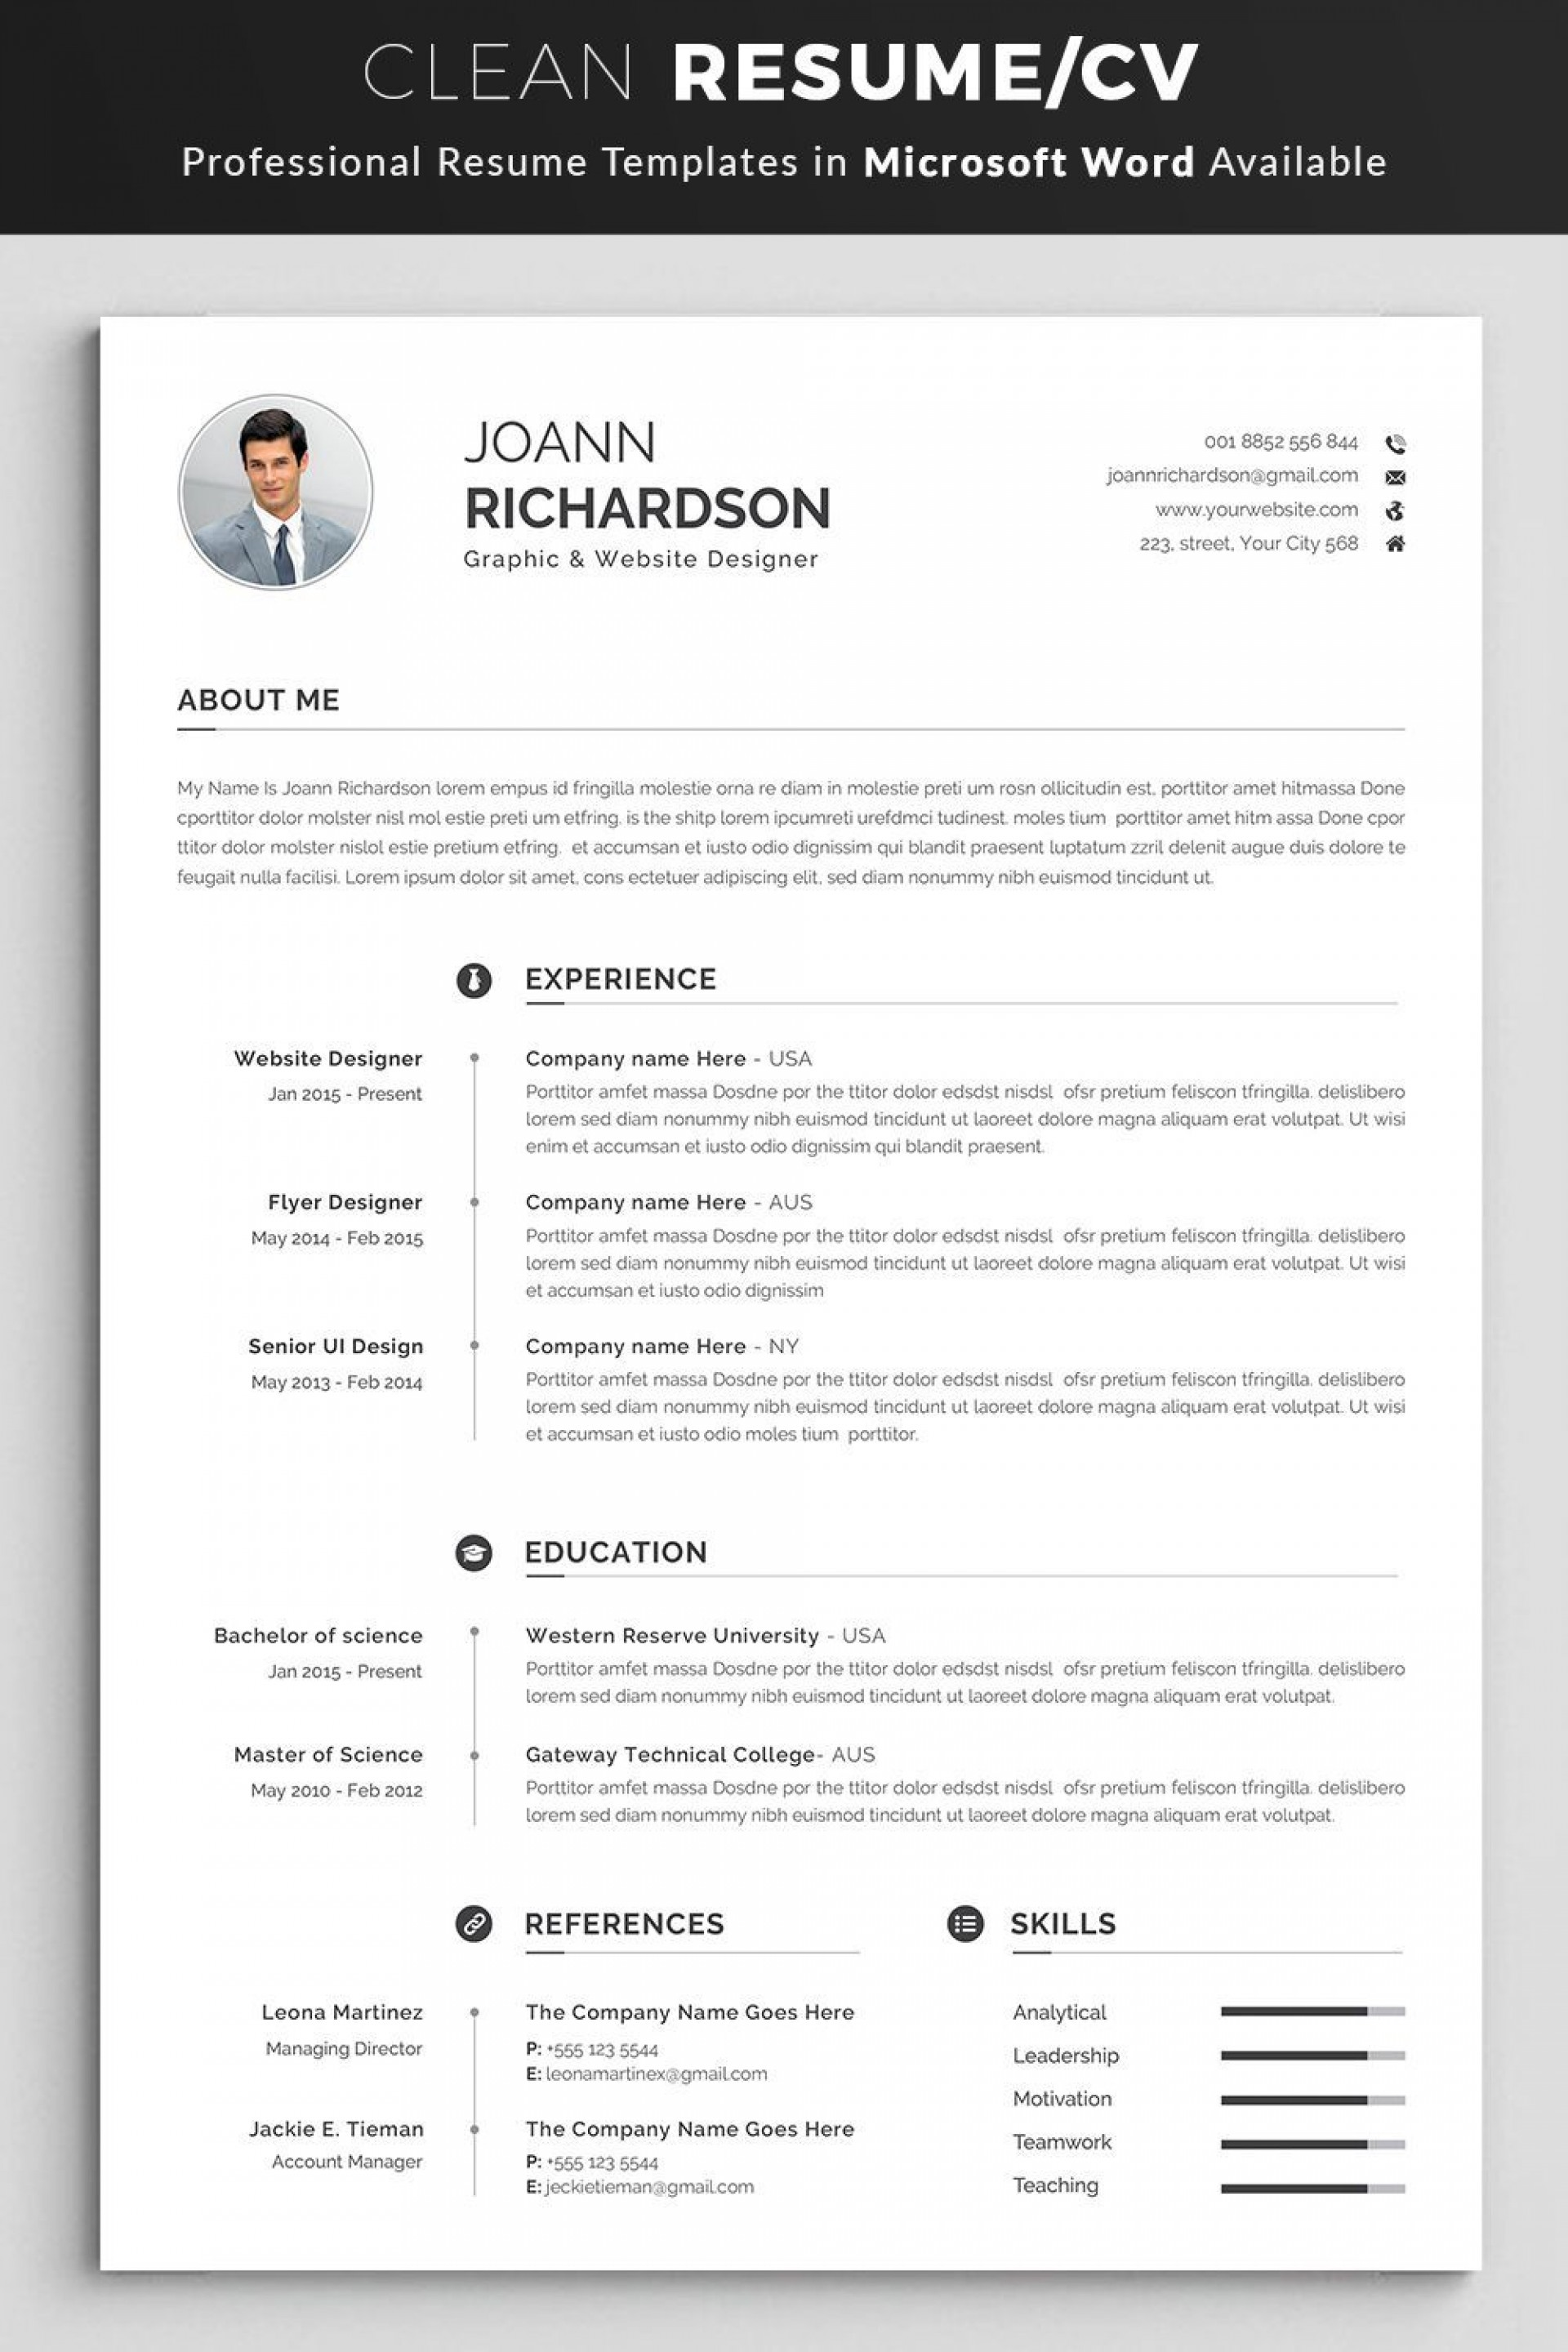 000 Excellent Make A Resume Template In Word High Def  How To 2010 20071920